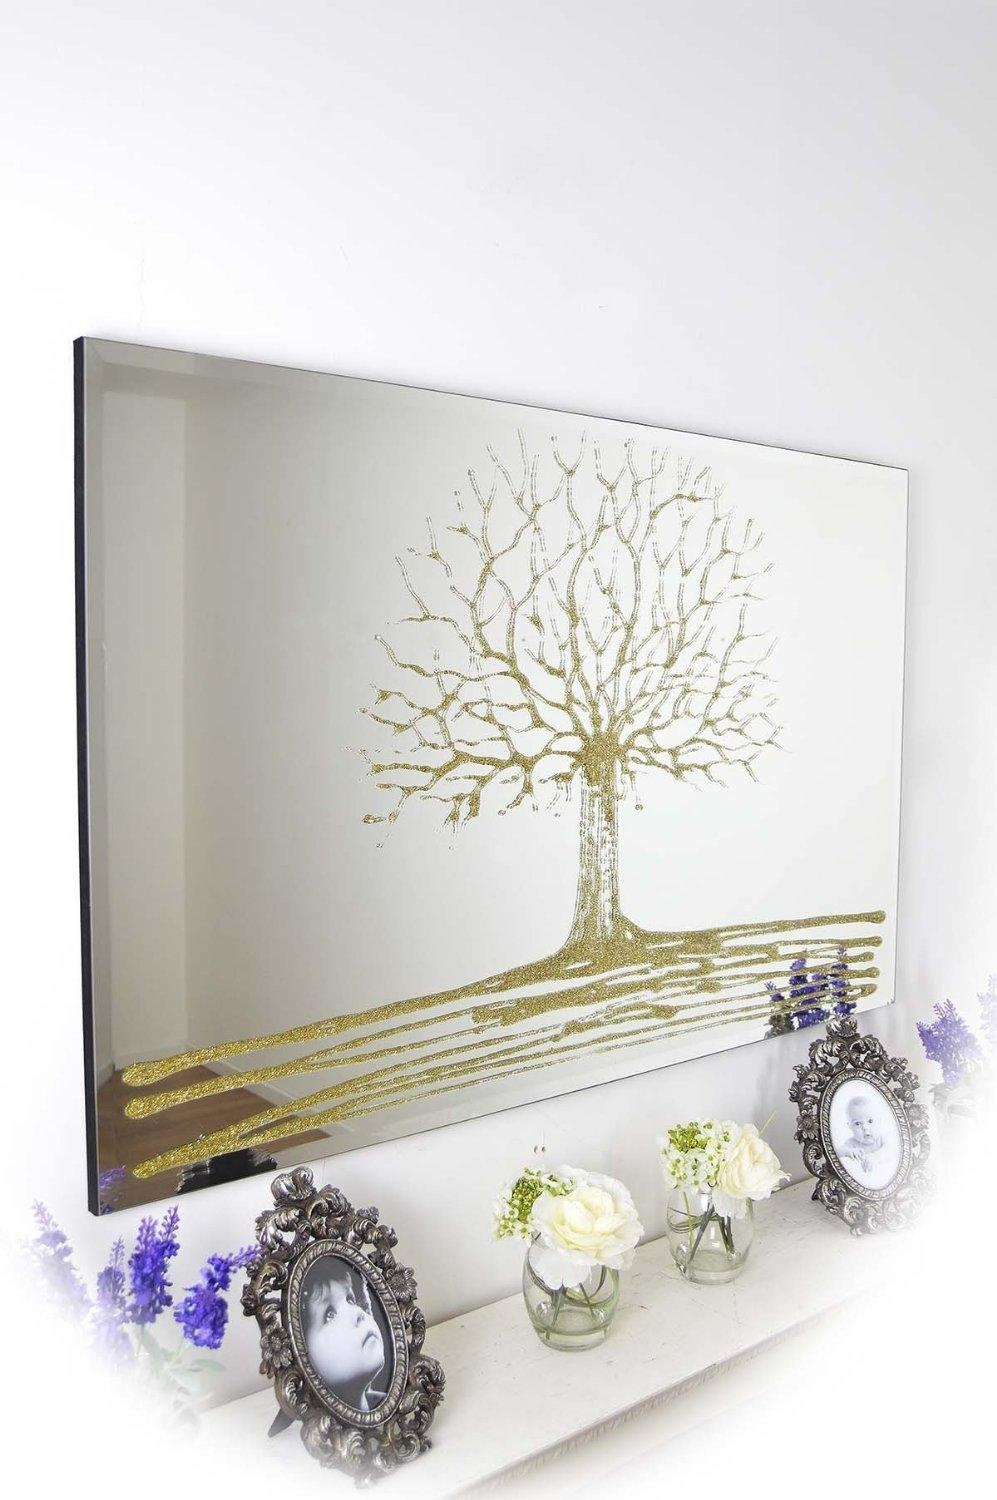 16 Ornate Mirrors For Your Home | Qosy Throughout Liquid Glass Mirrors (Image 1 of 20)